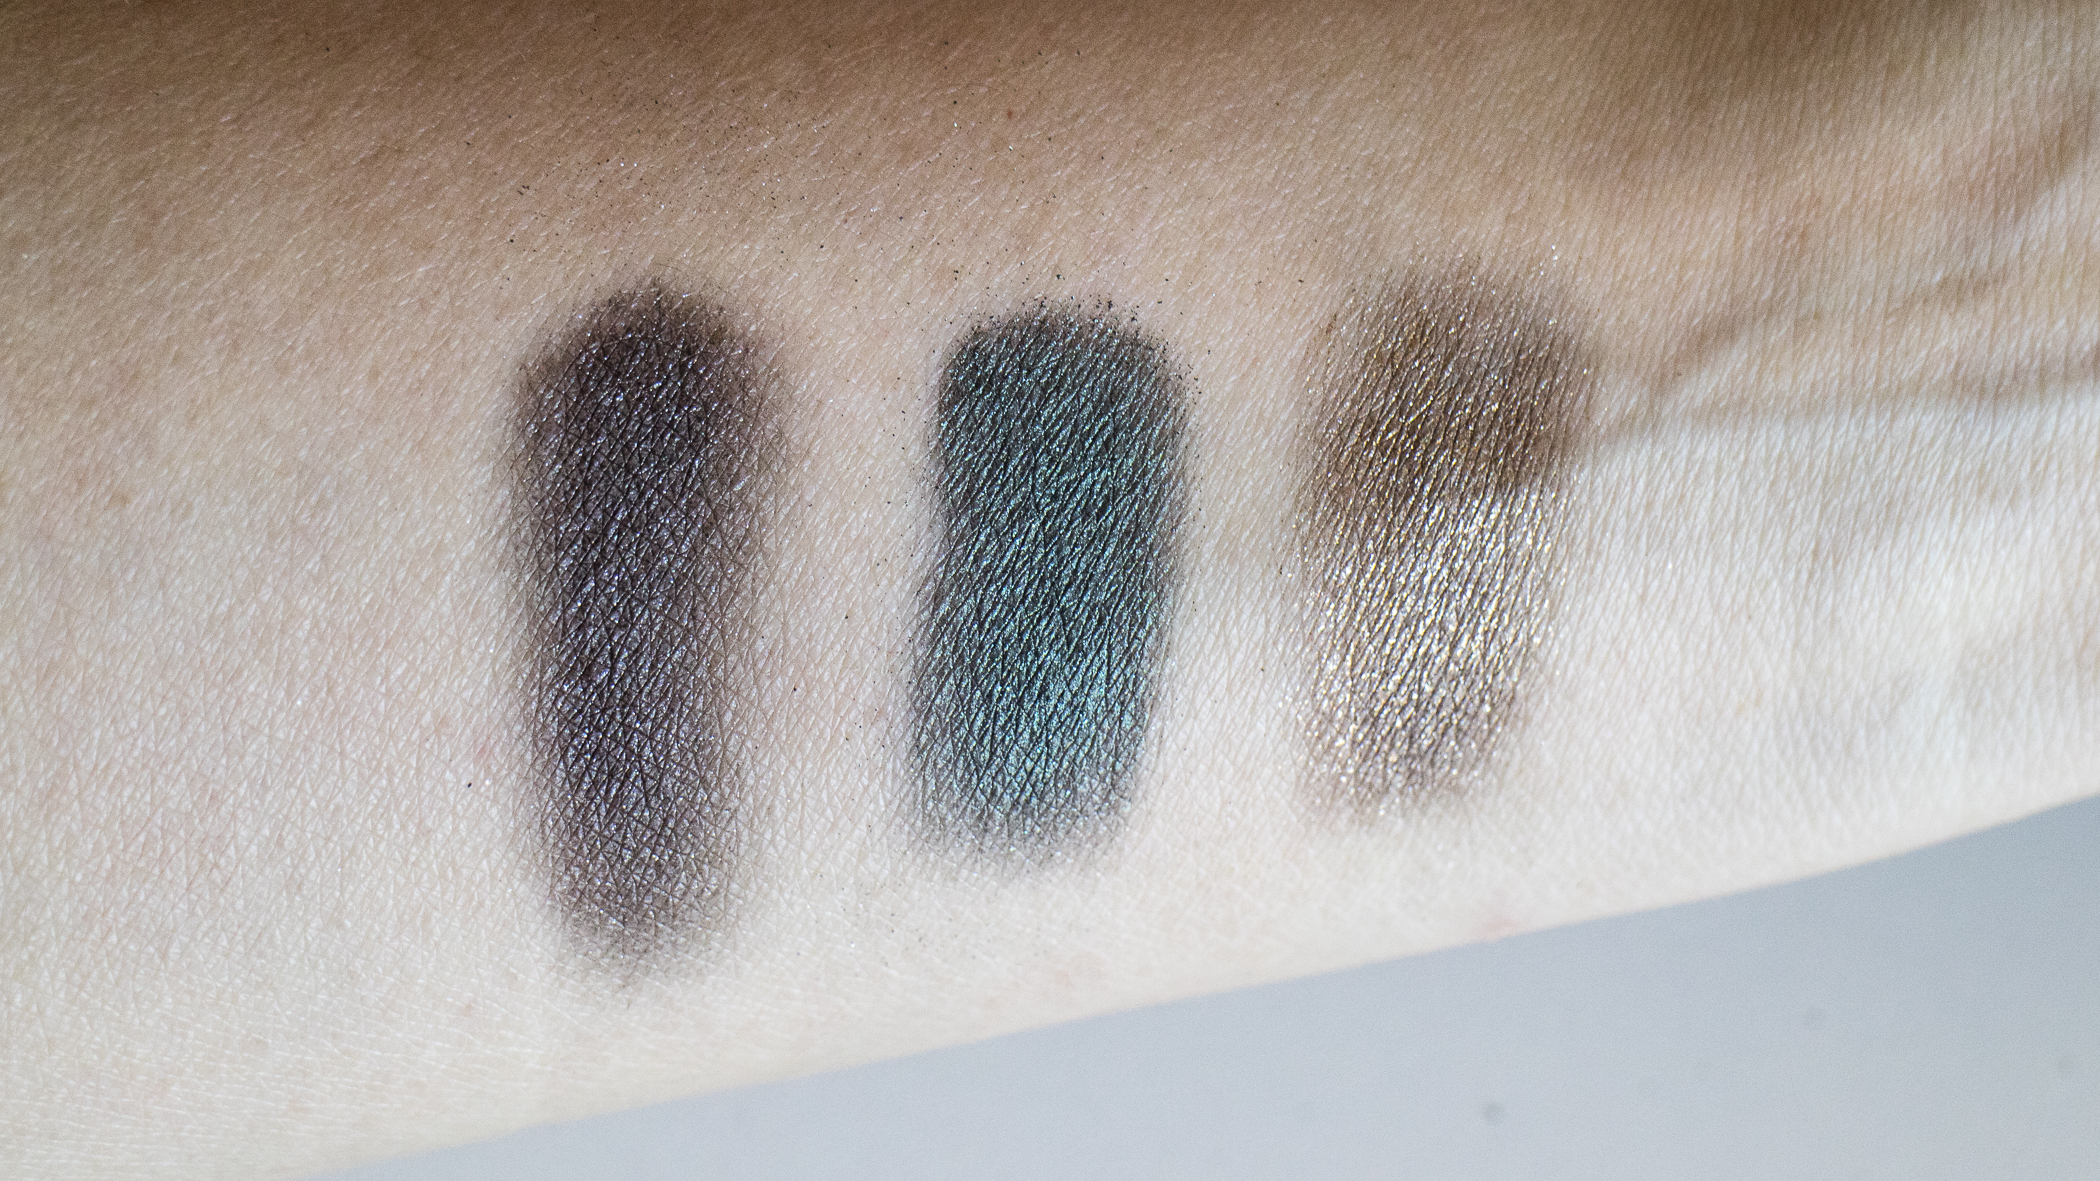 Brush swatches over eye primer - from L: Black Myrrh, Charred Emerald, Bitter Clove